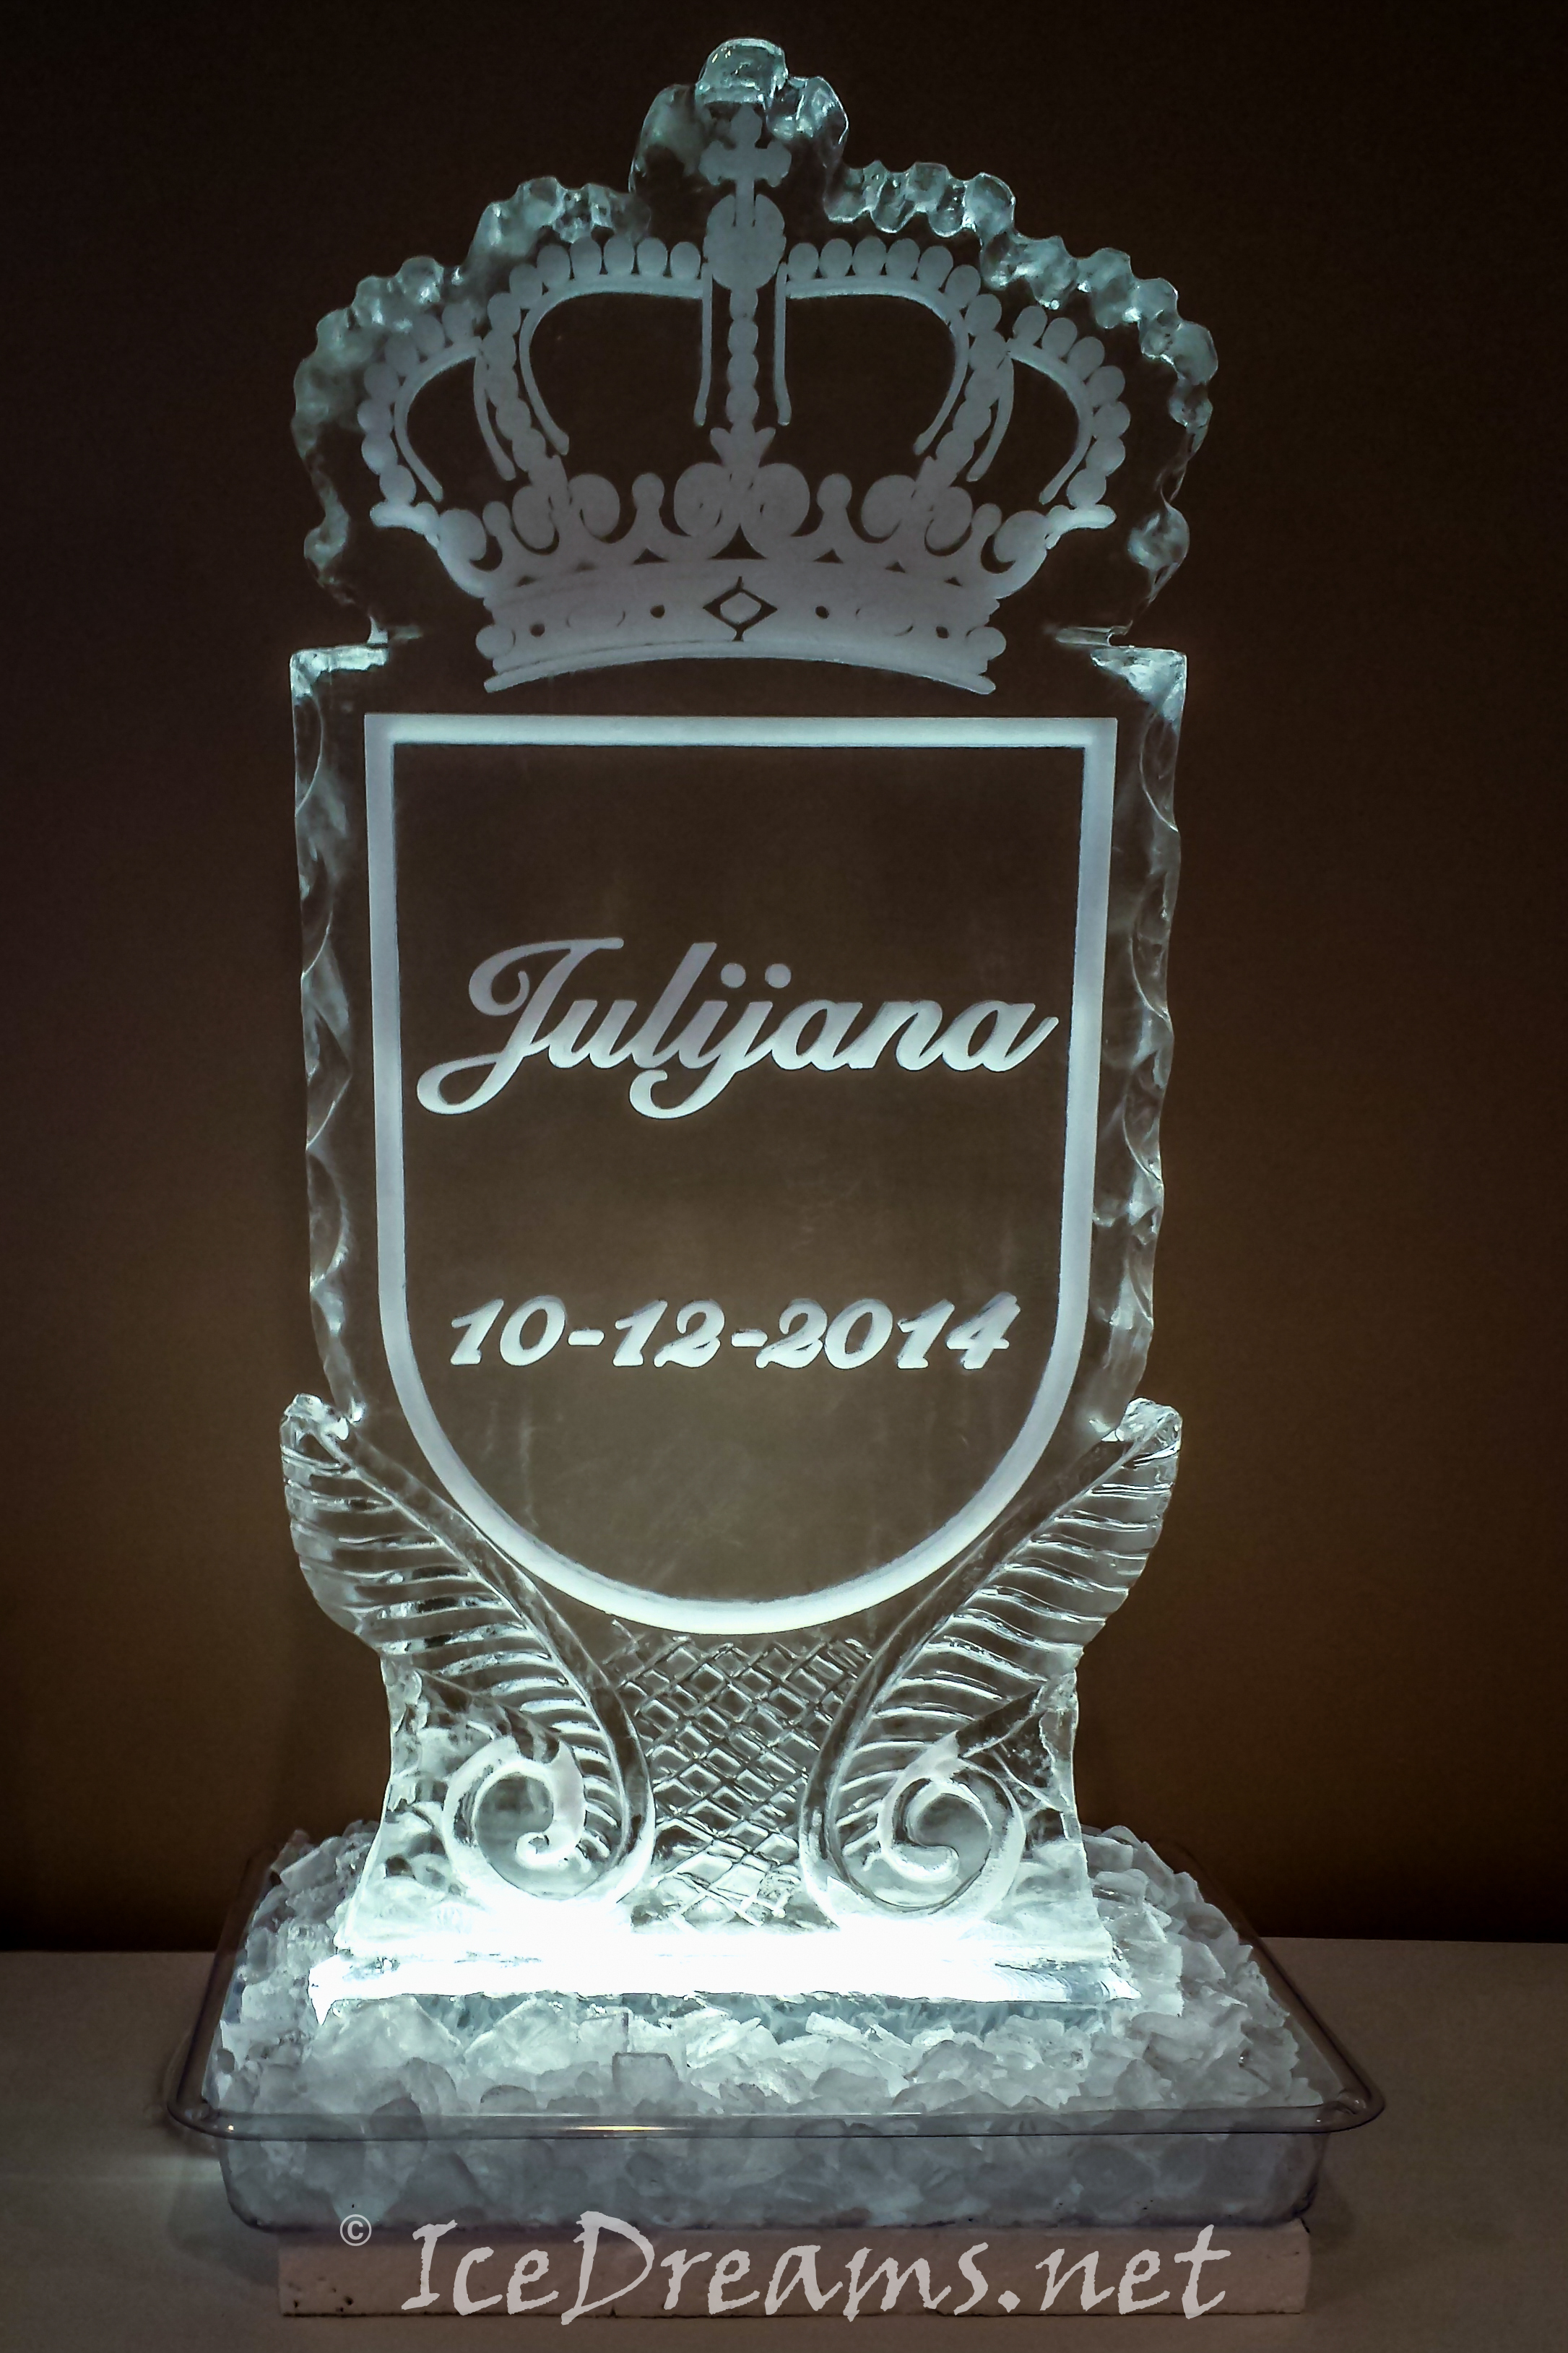 Baby Shower Ice Sculptures Ice Dreams